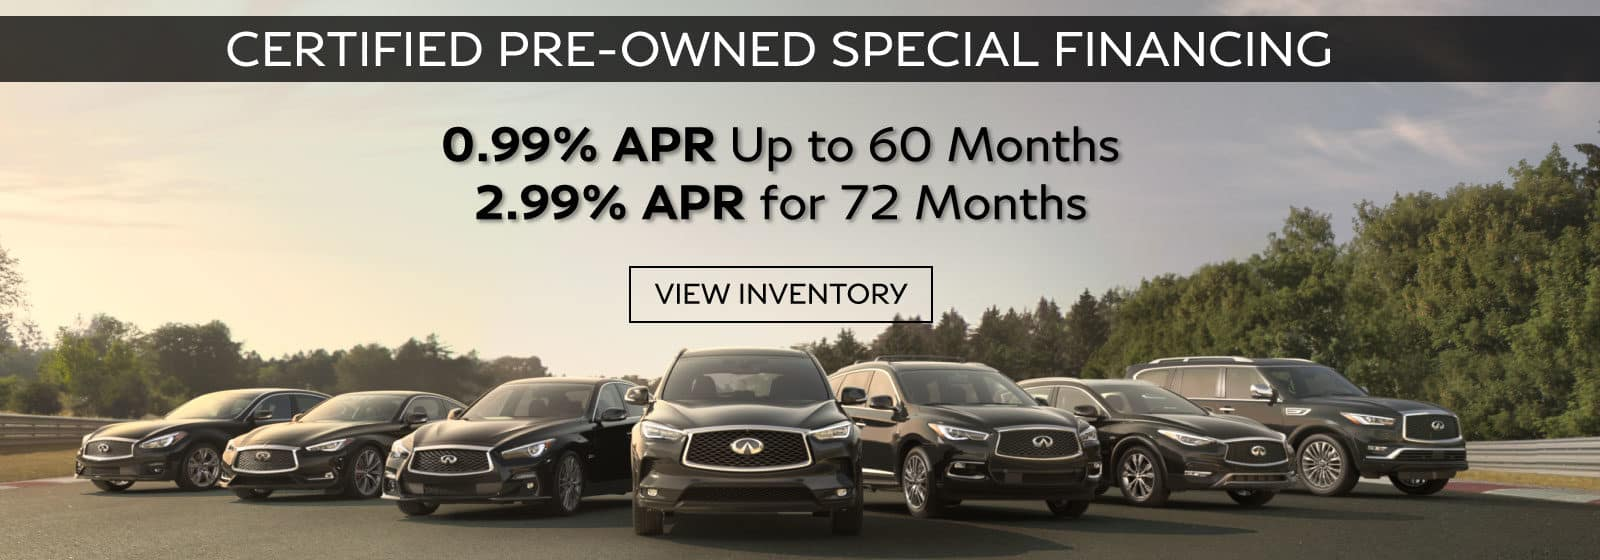 CPO specials .99% for up to 60 months, 2.99% for up to 72 months